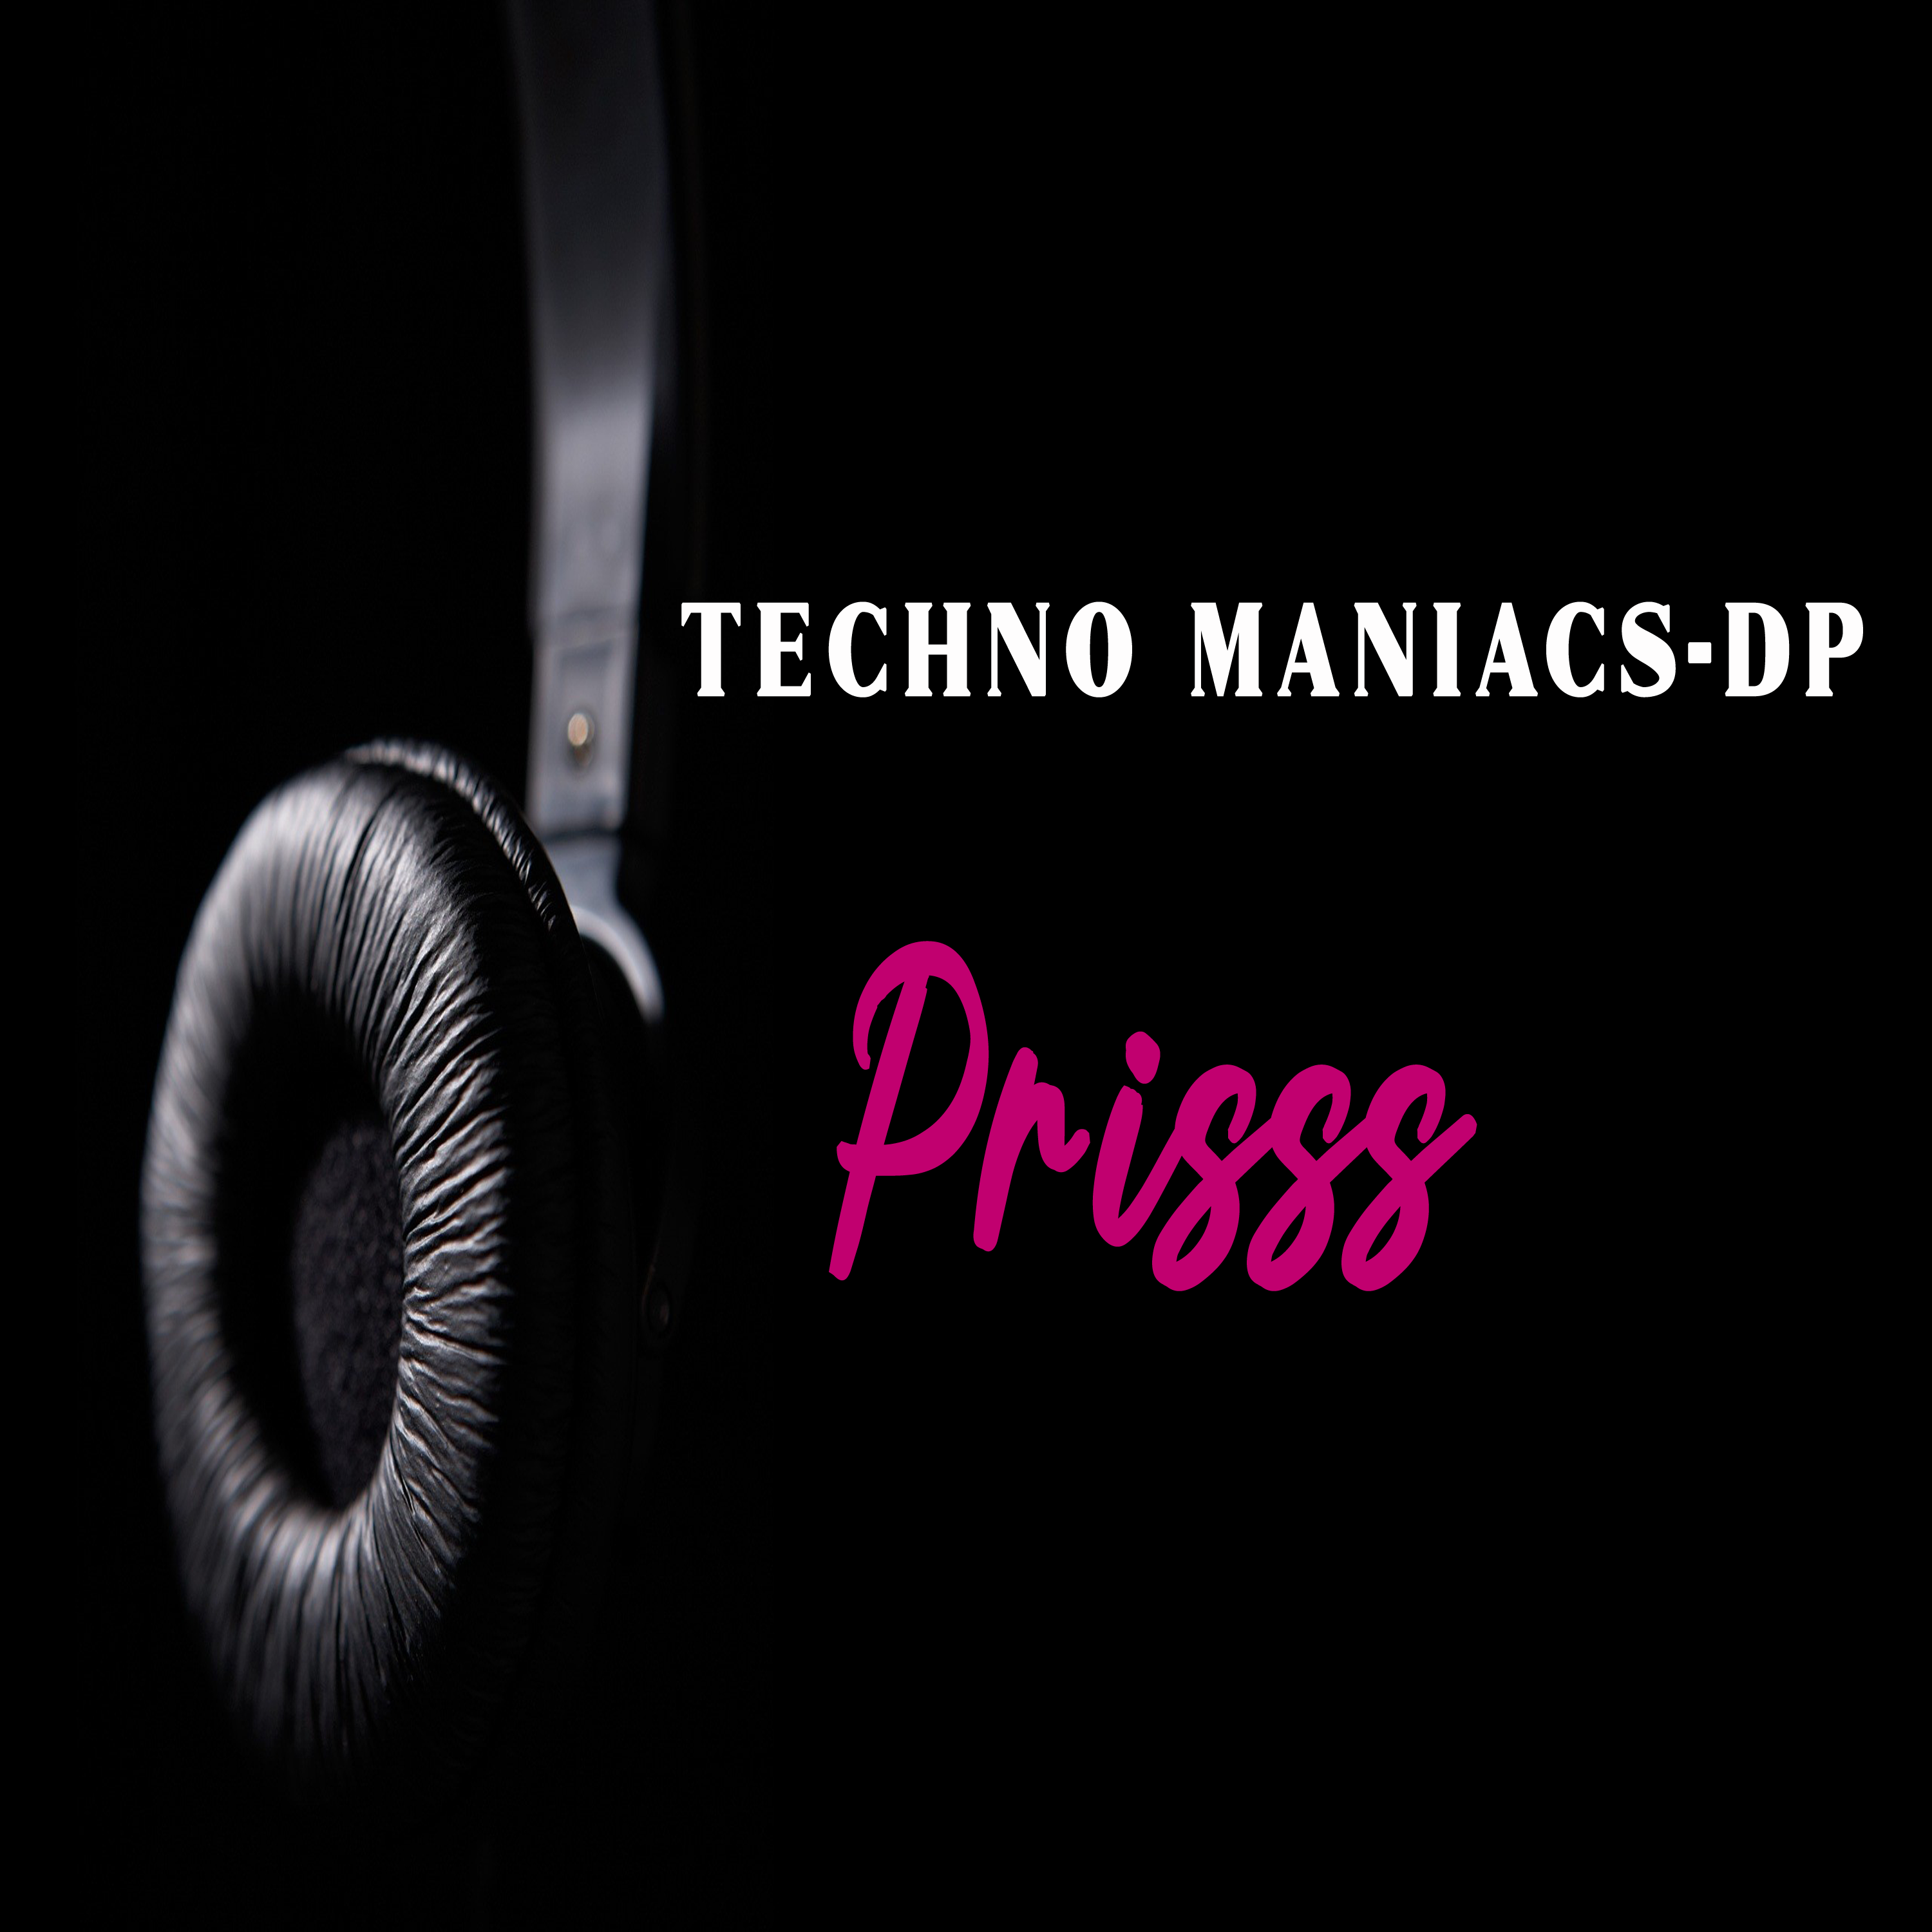 Techno Maniacs-dp :: Episode 032 (aired on October 15th) banner logo